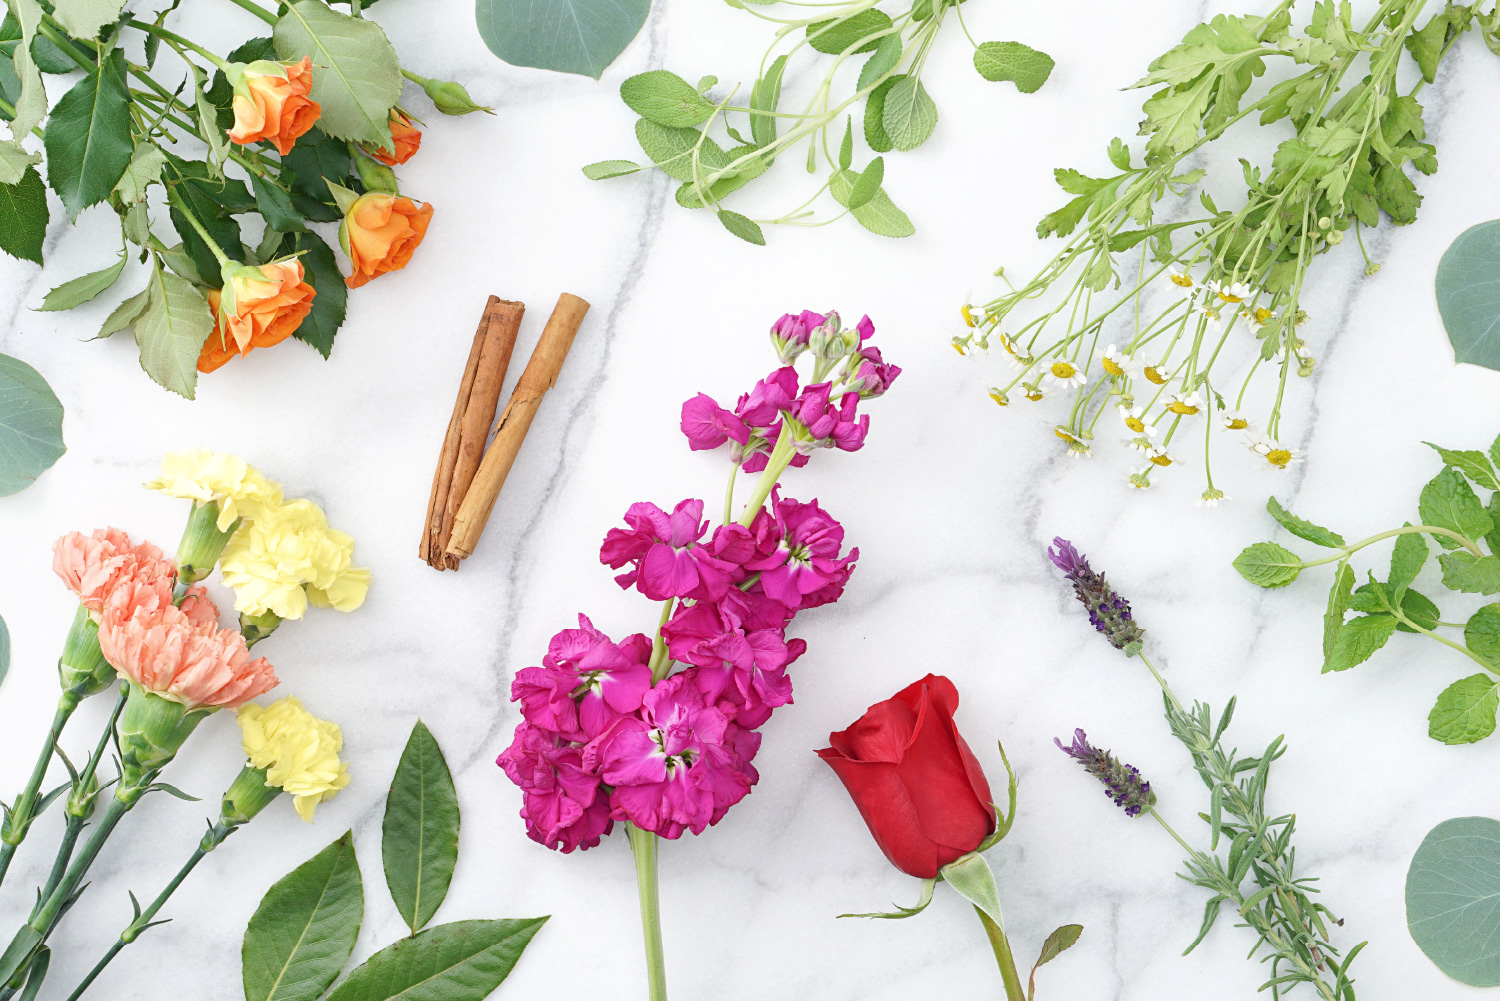 herbs and flowers for how to make incense